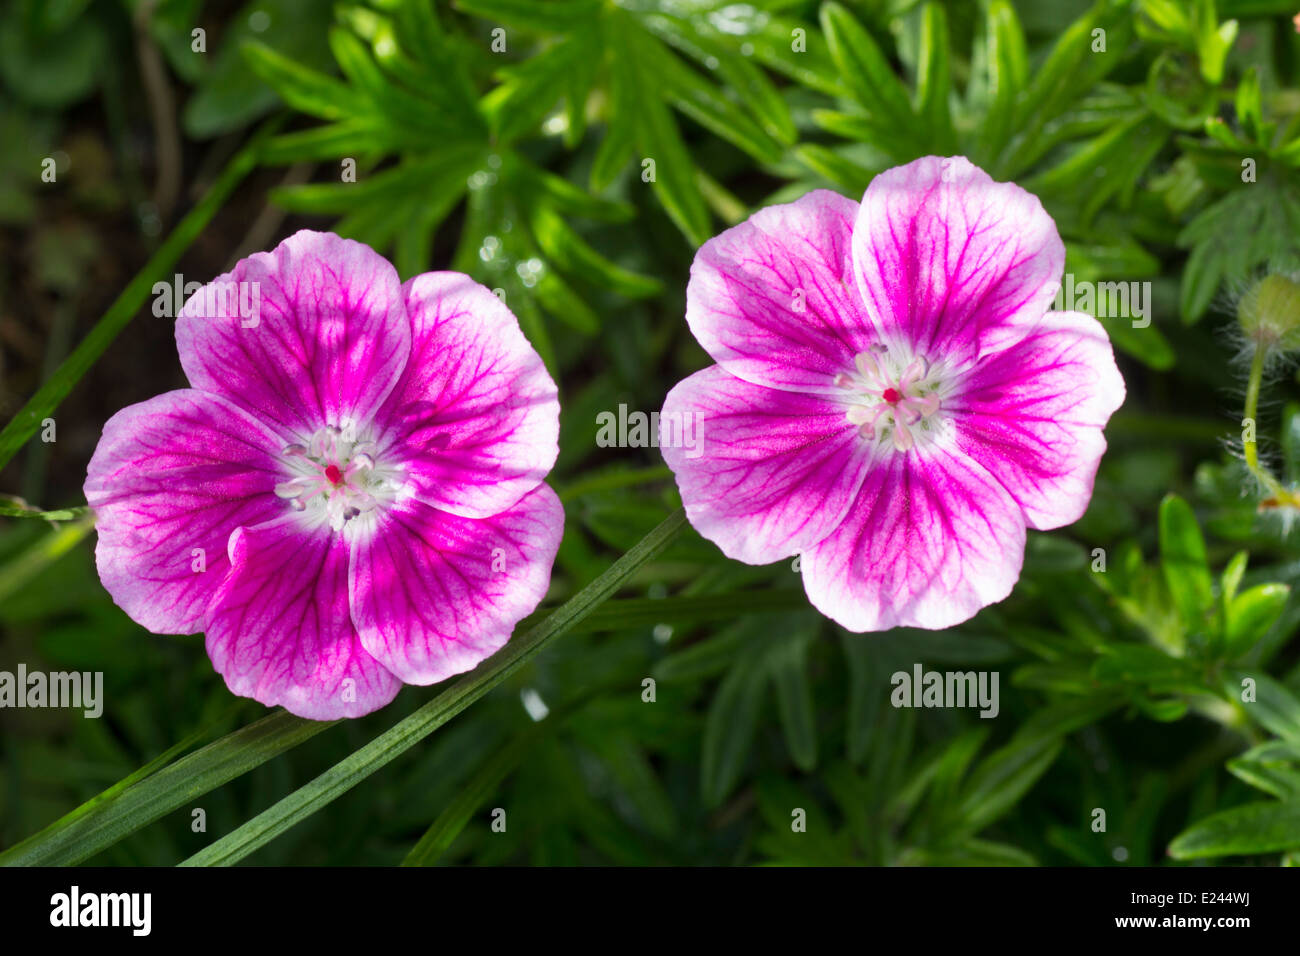 Pink And White Geranium Stock Photos Pink And White Geranium Stock